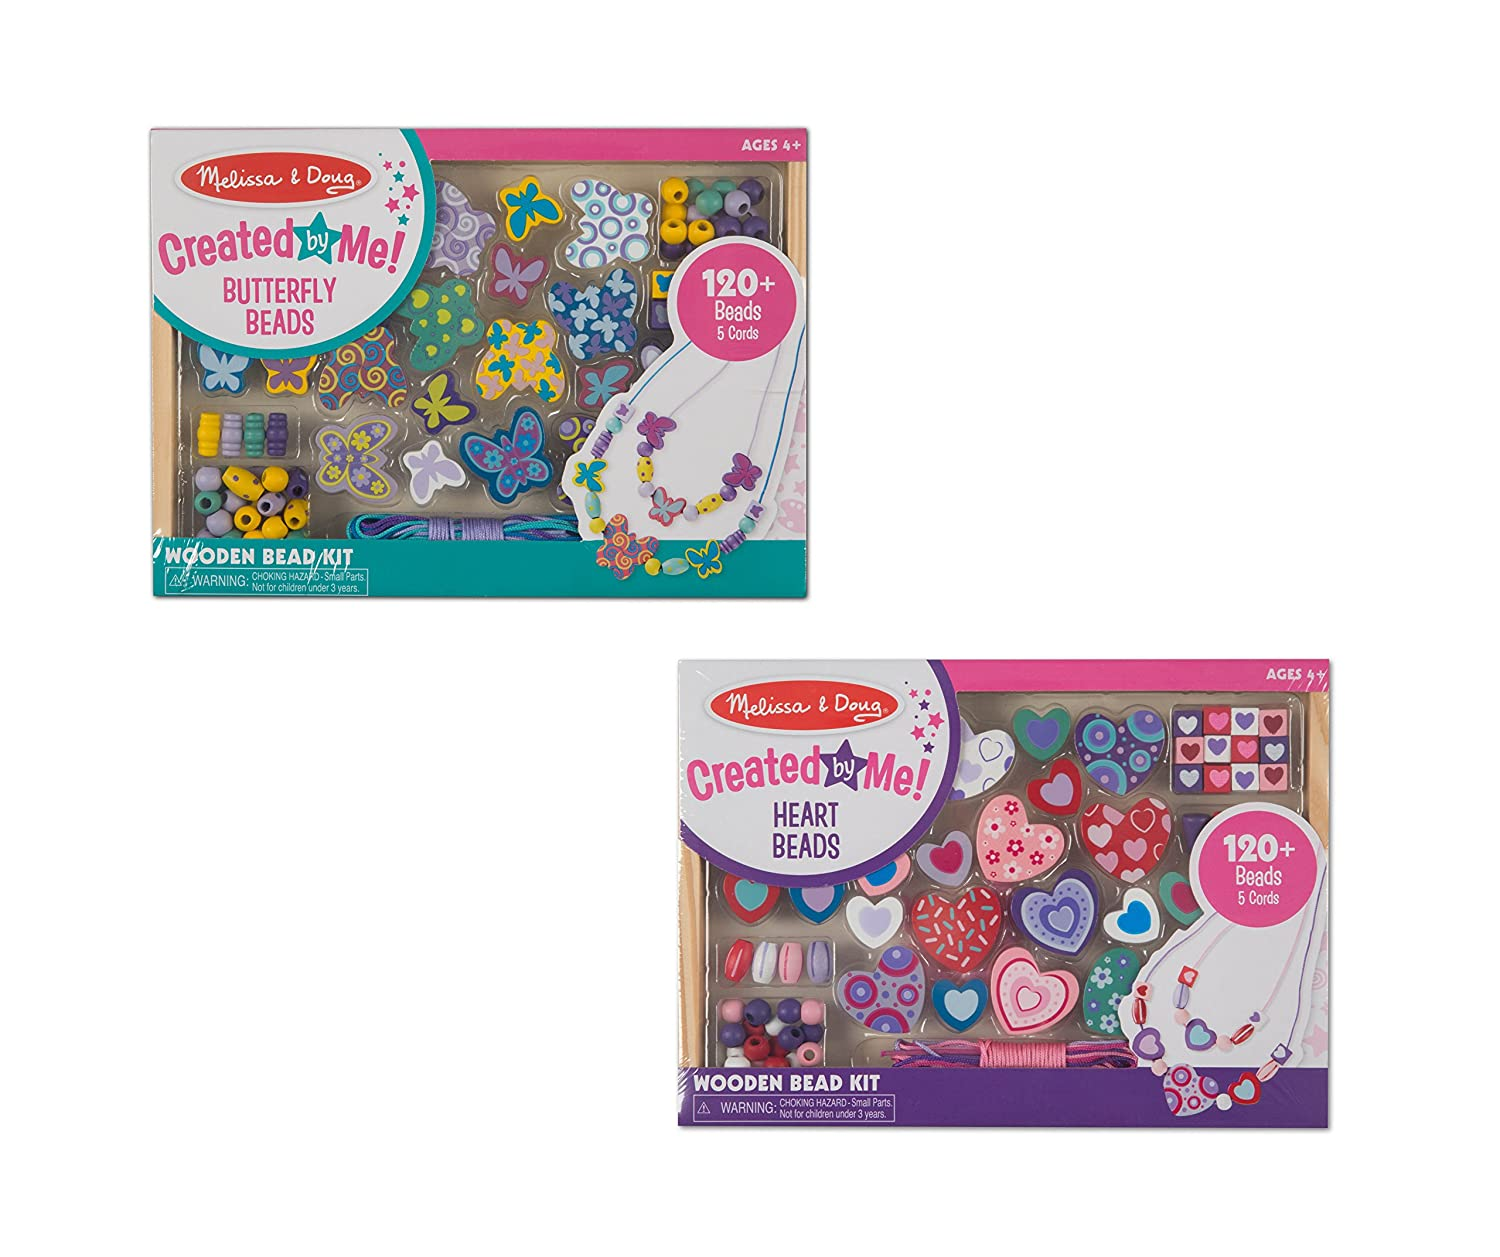 Melissa & Doug Wooden Bead Kits, Set of 2, Sweet Hearts and Butterfly Friends (120 Wooden Beads & 5 Color Cords, Great Gift for Girls and Boys - Best for 4, 5, 6, and 7 Year Olds)